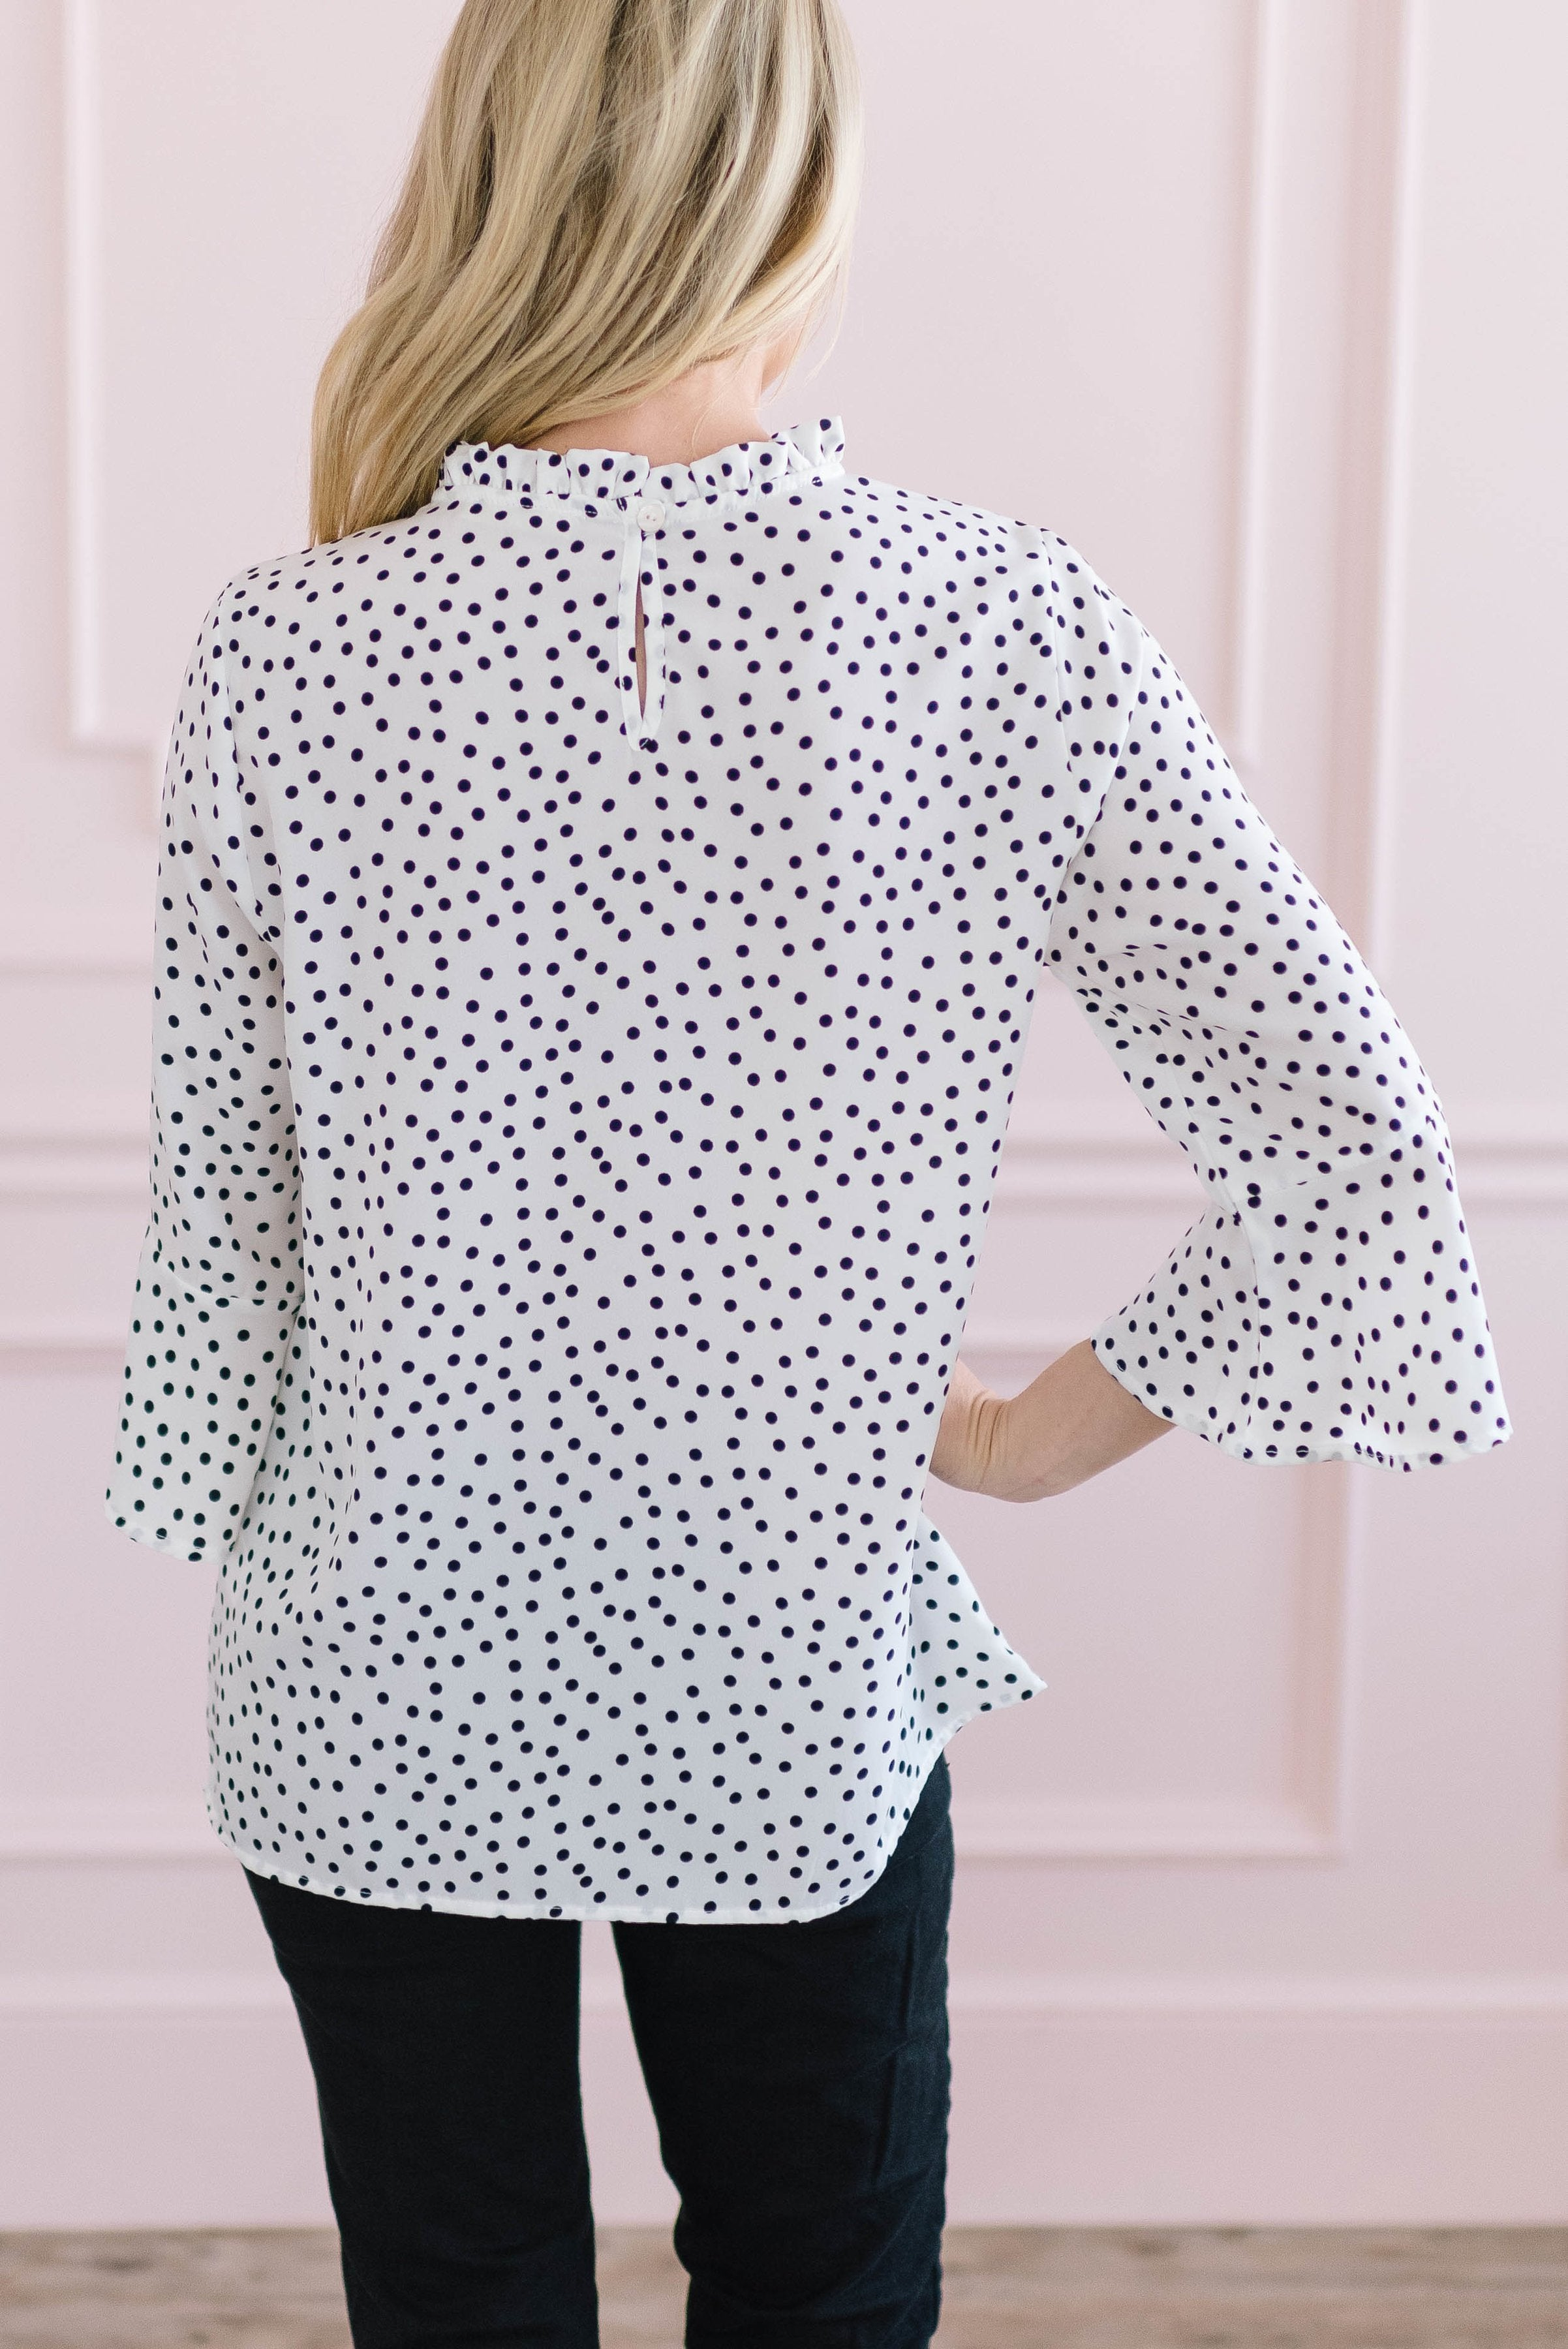 Black + White Dot Top